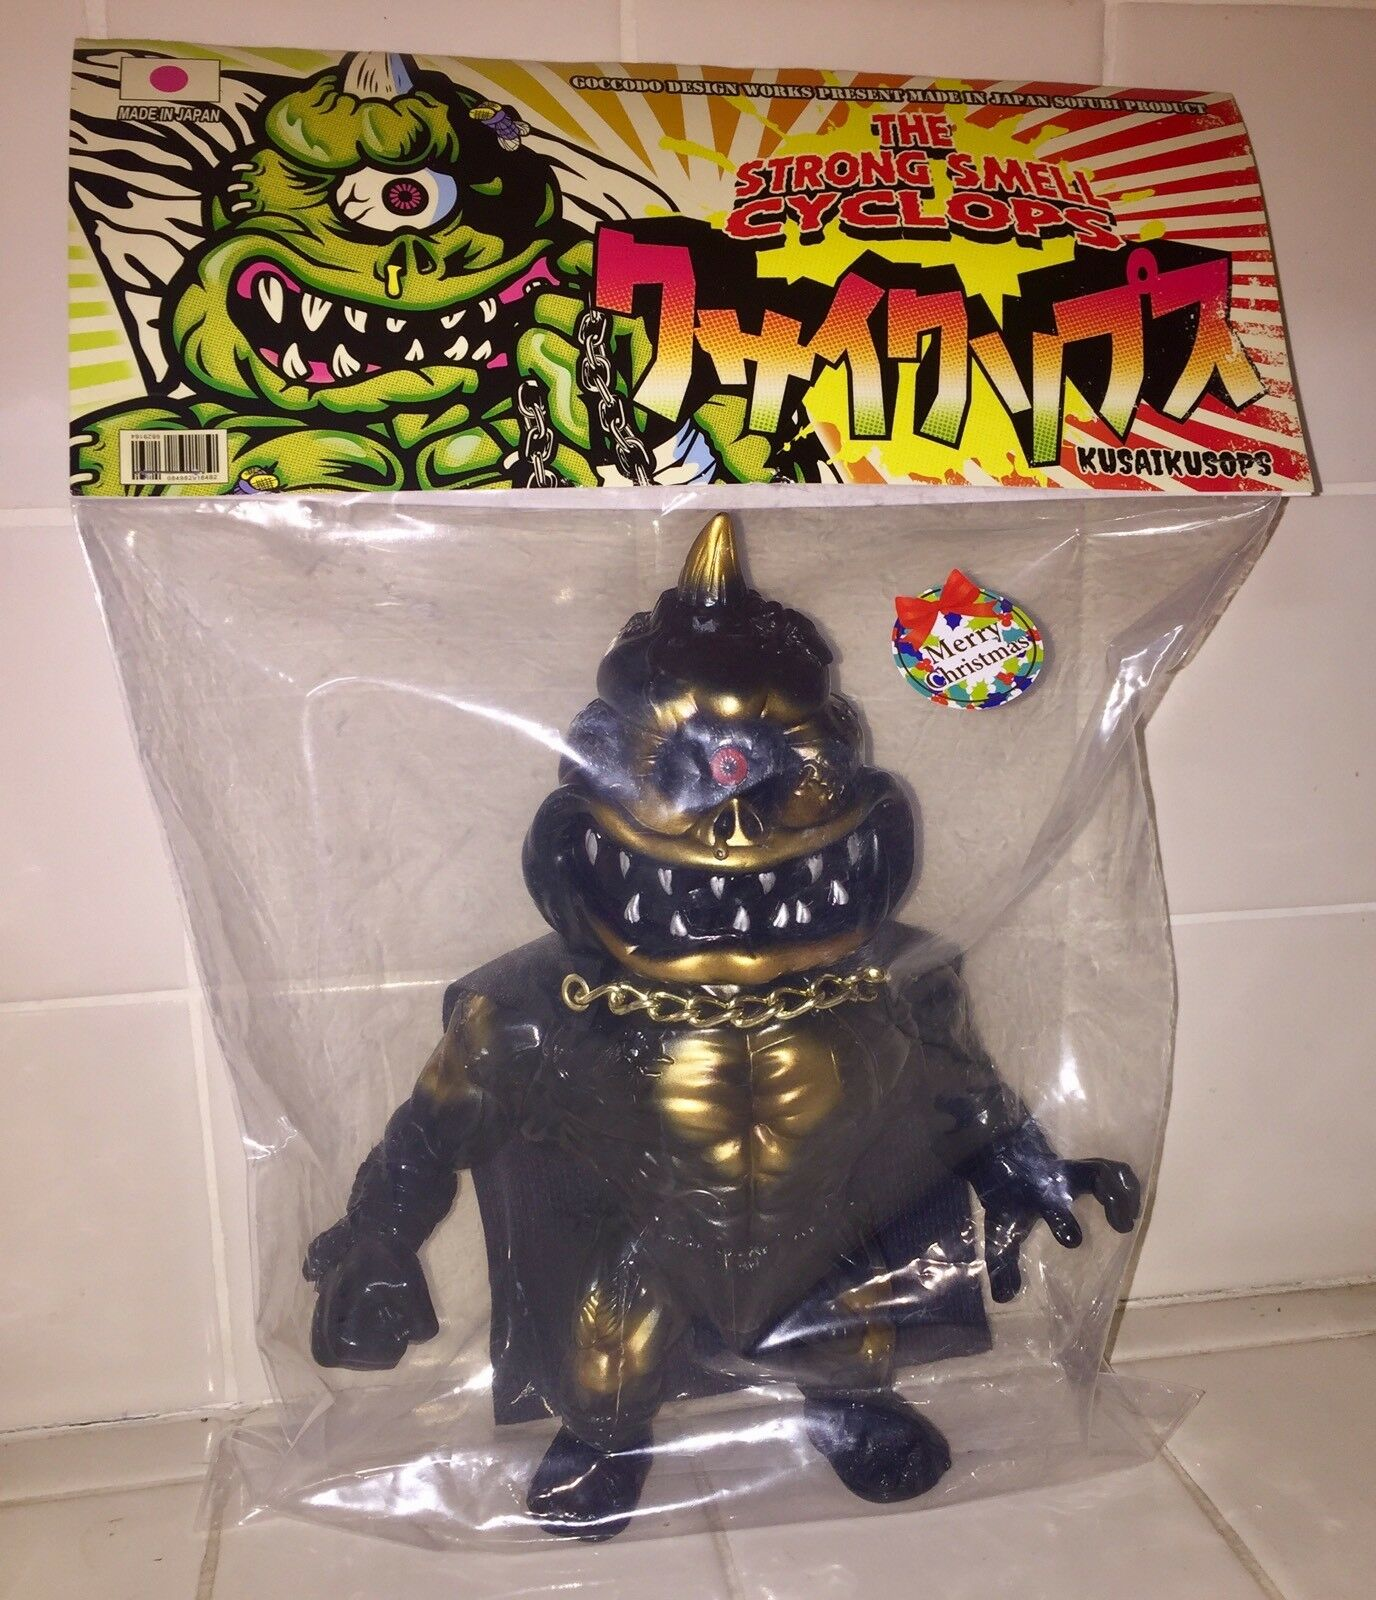 GOCCODO THE STRONG SMELL CYCLOPS DARK SIDE DARTH VADER KAIJU Punk Drunkers RARE